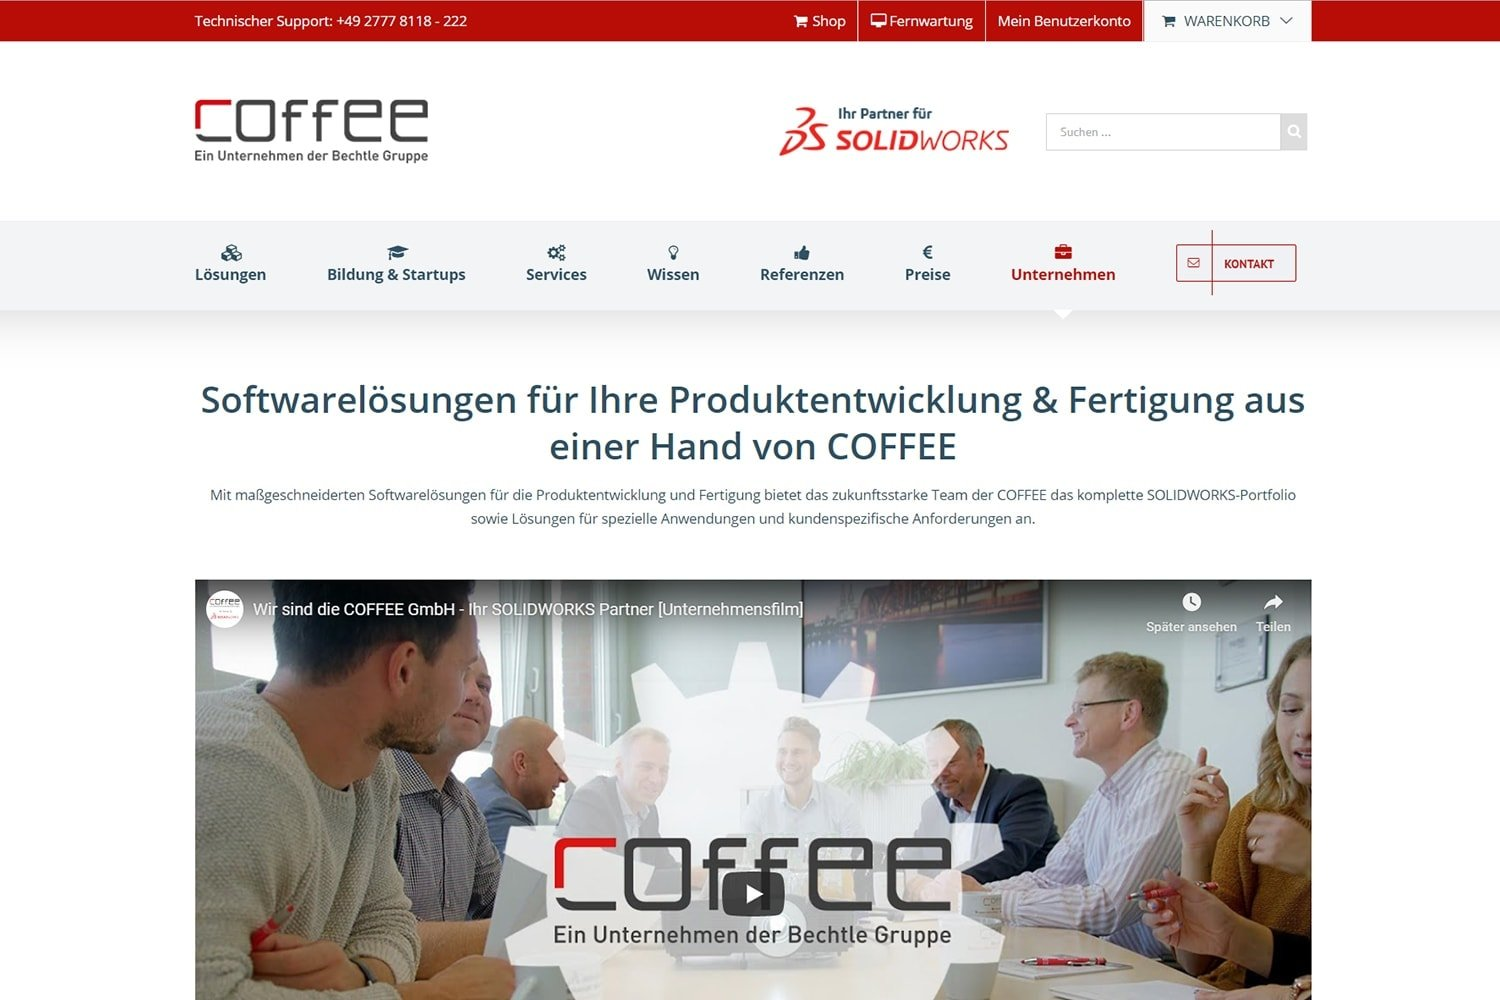 Video Integration auf der Homepage